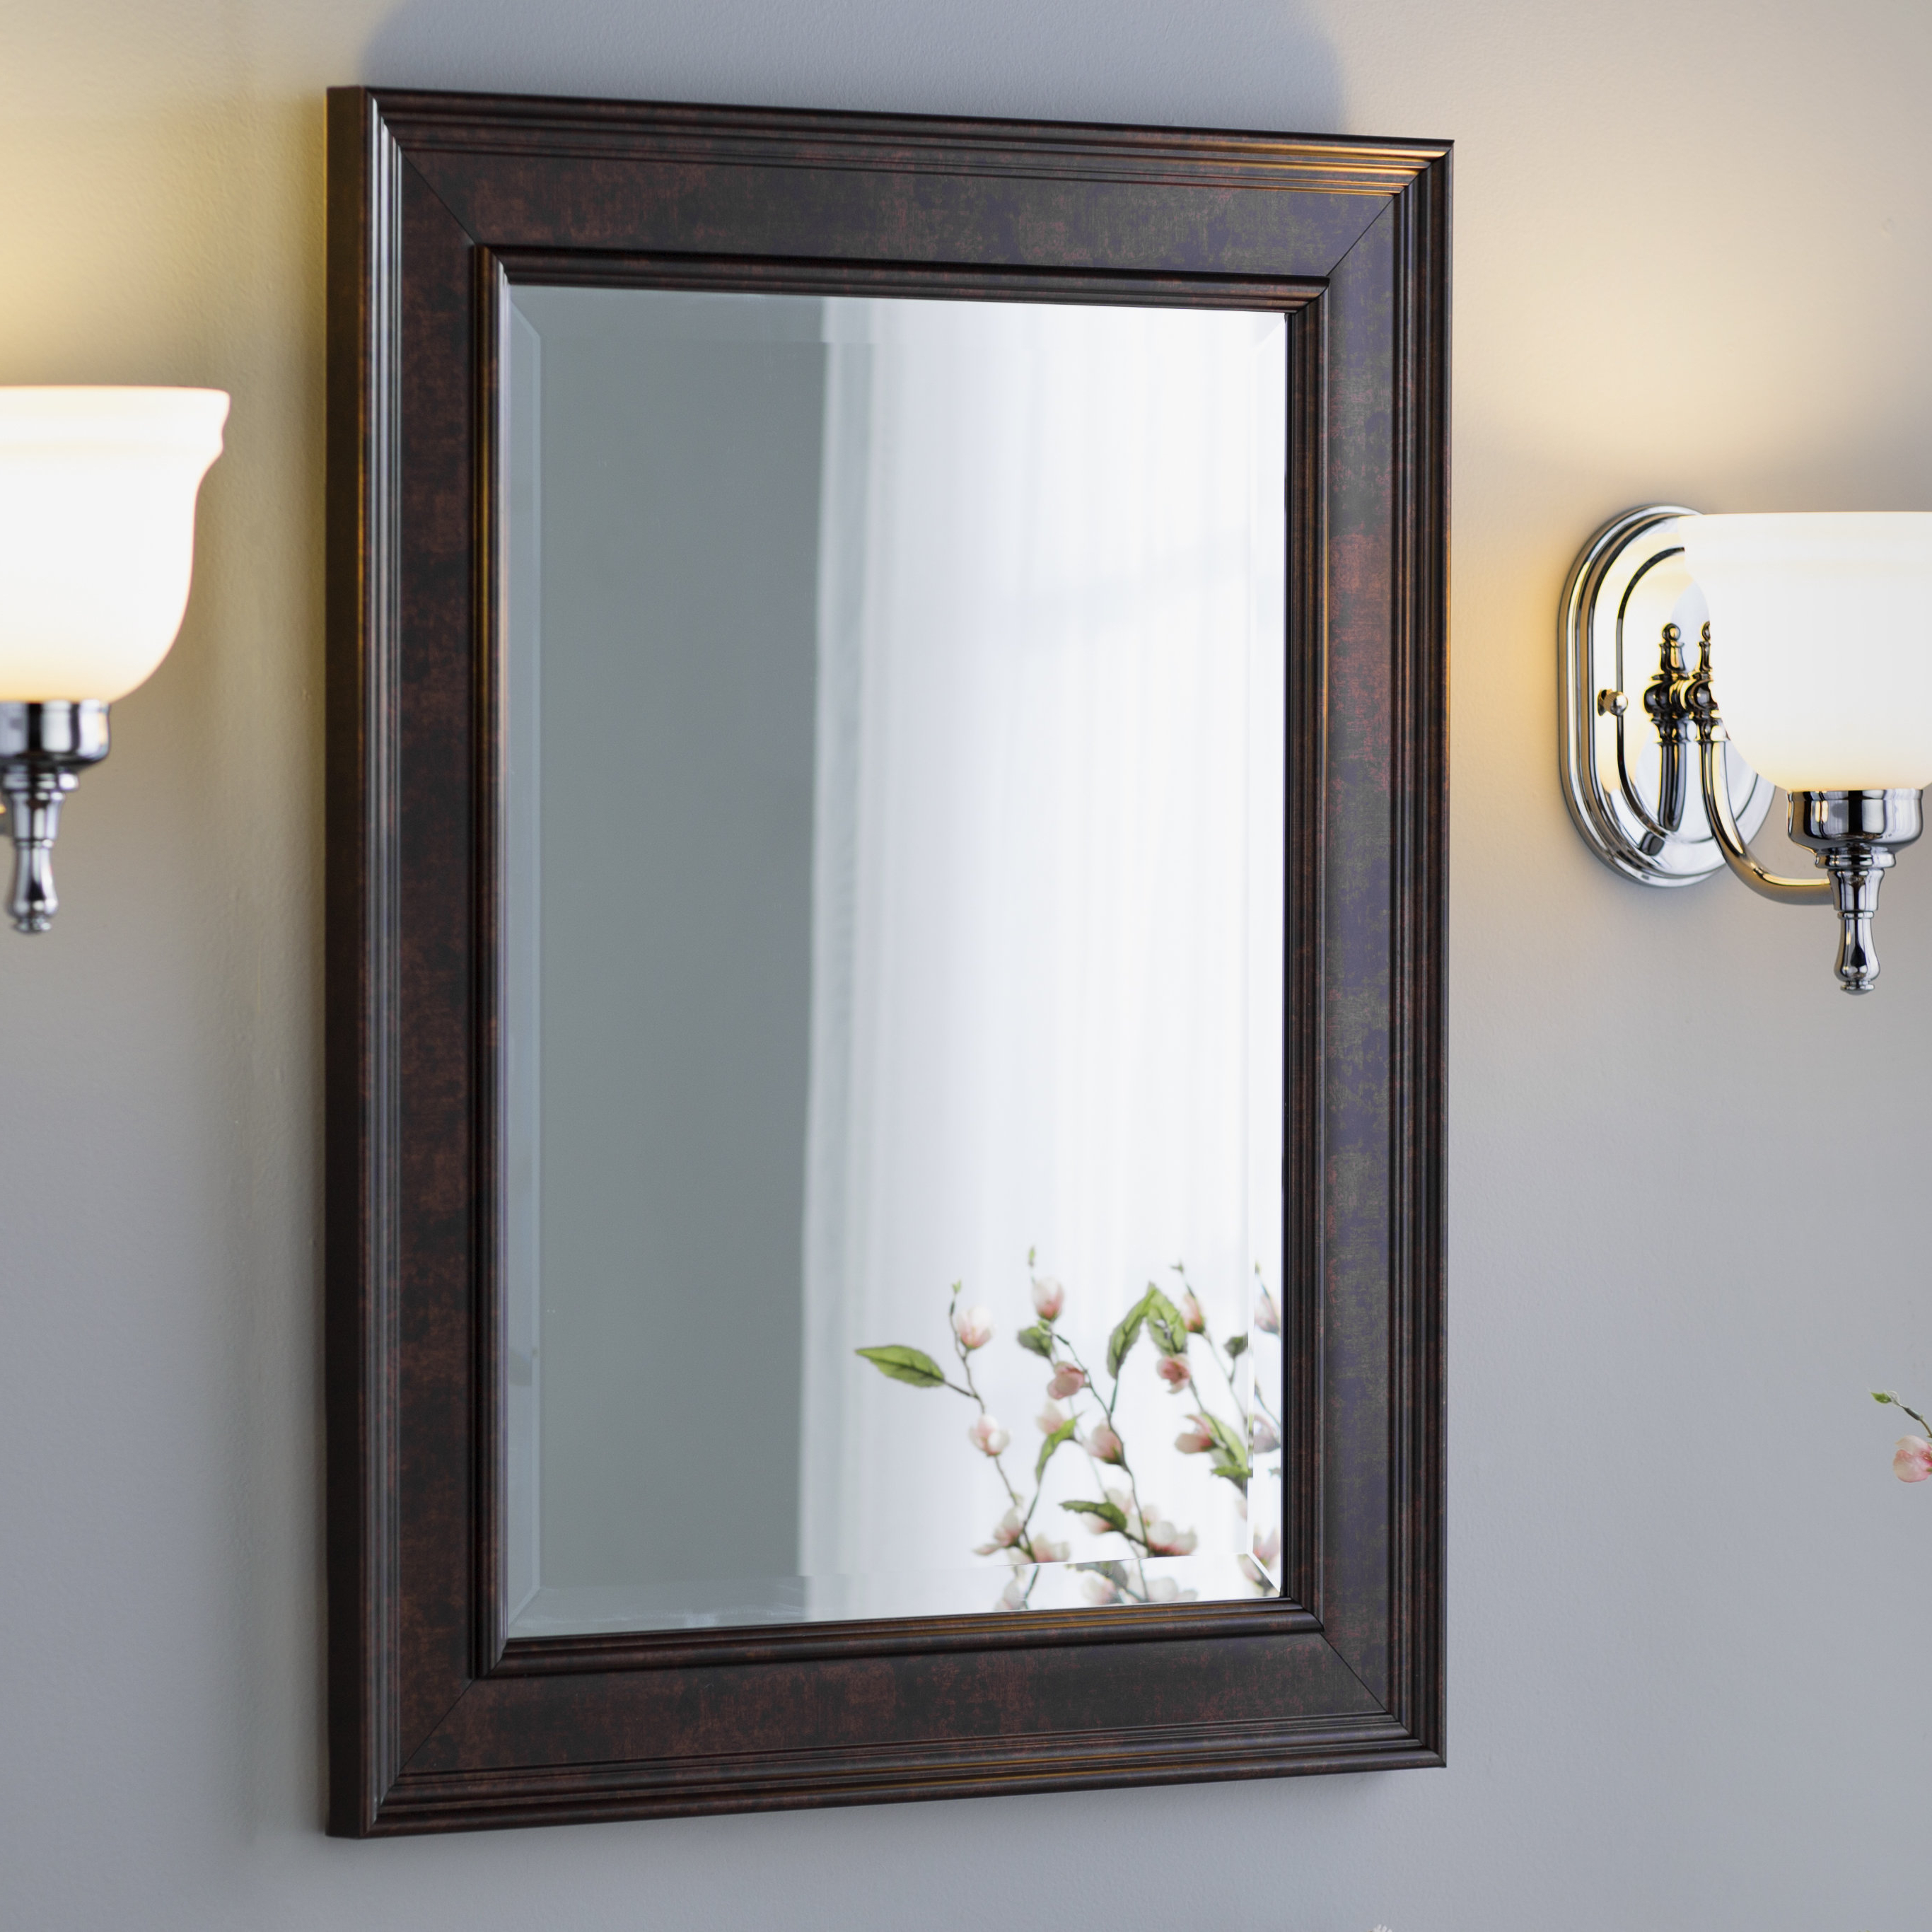 Trendy Entry Wall Mirrors Intended For Traditional Beveled Wall Mirror (View 19 of 20)